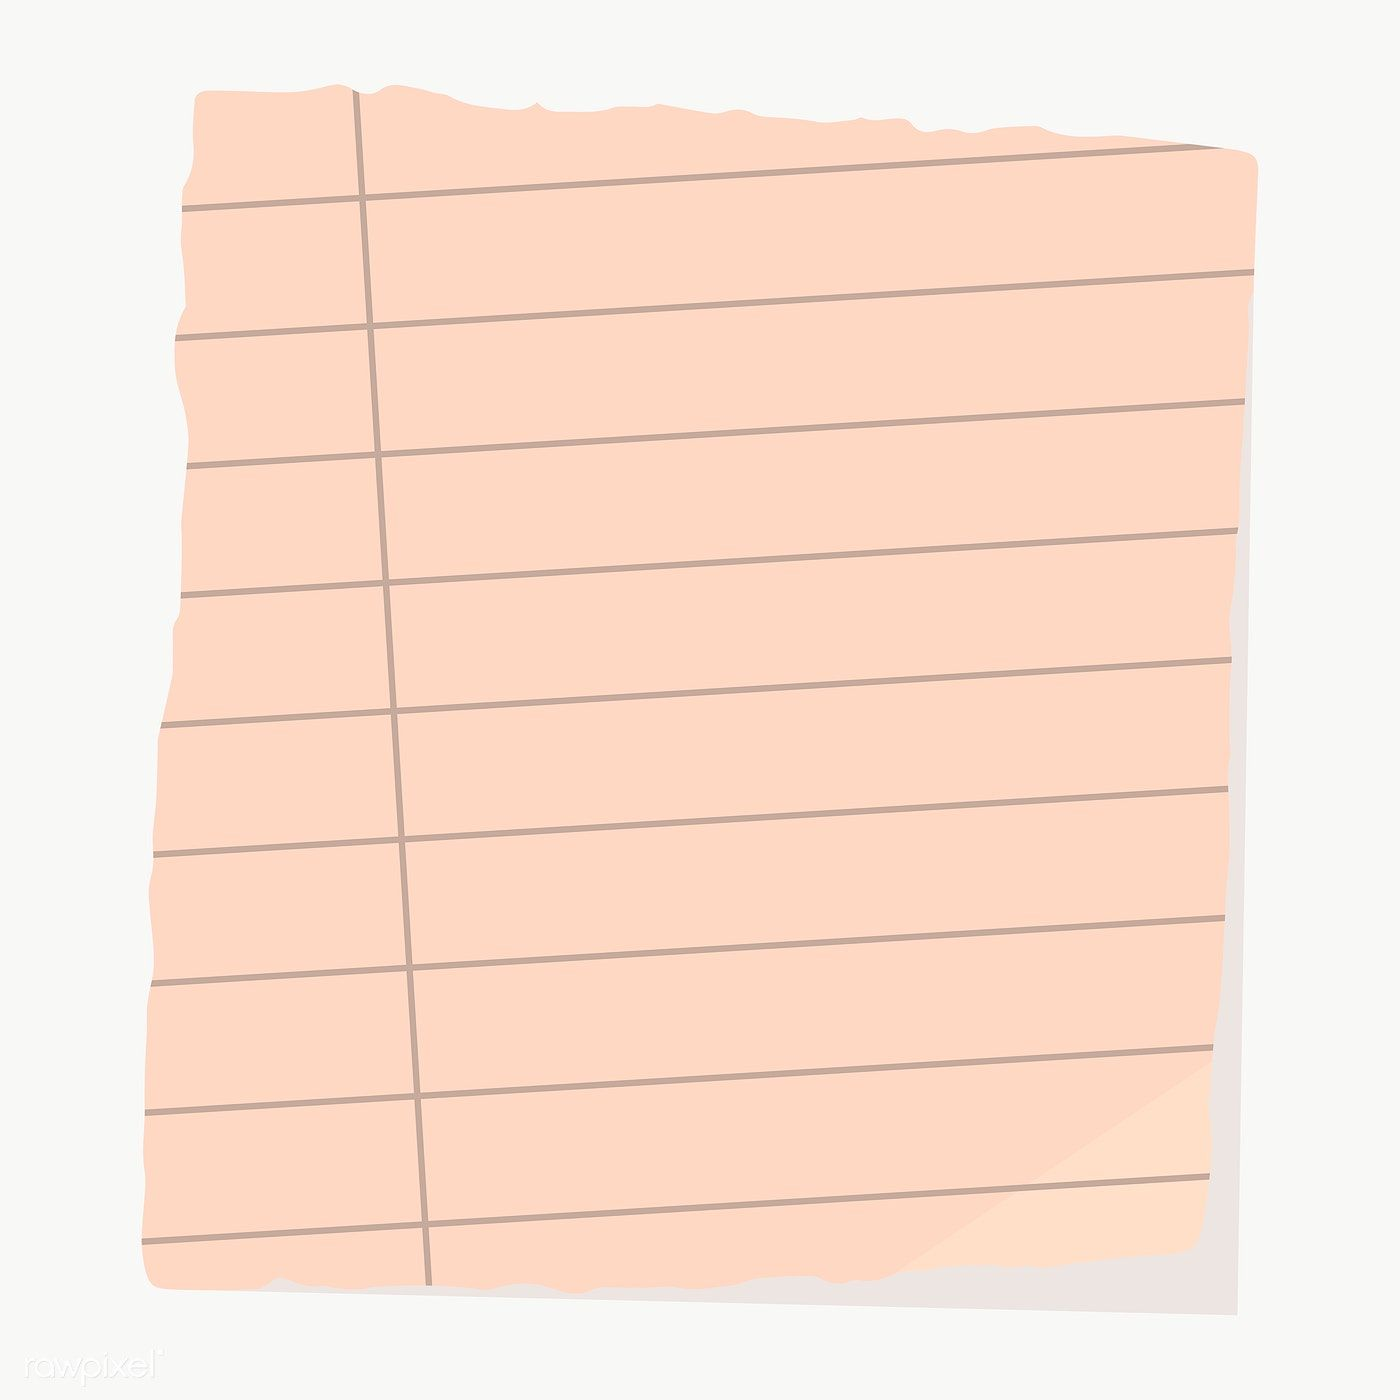 Pink Square Paper Note Social Ads Template Transparent Png Free Image By Rawpixel Com Manotang Note Paper Square Paper Design Mockup Free